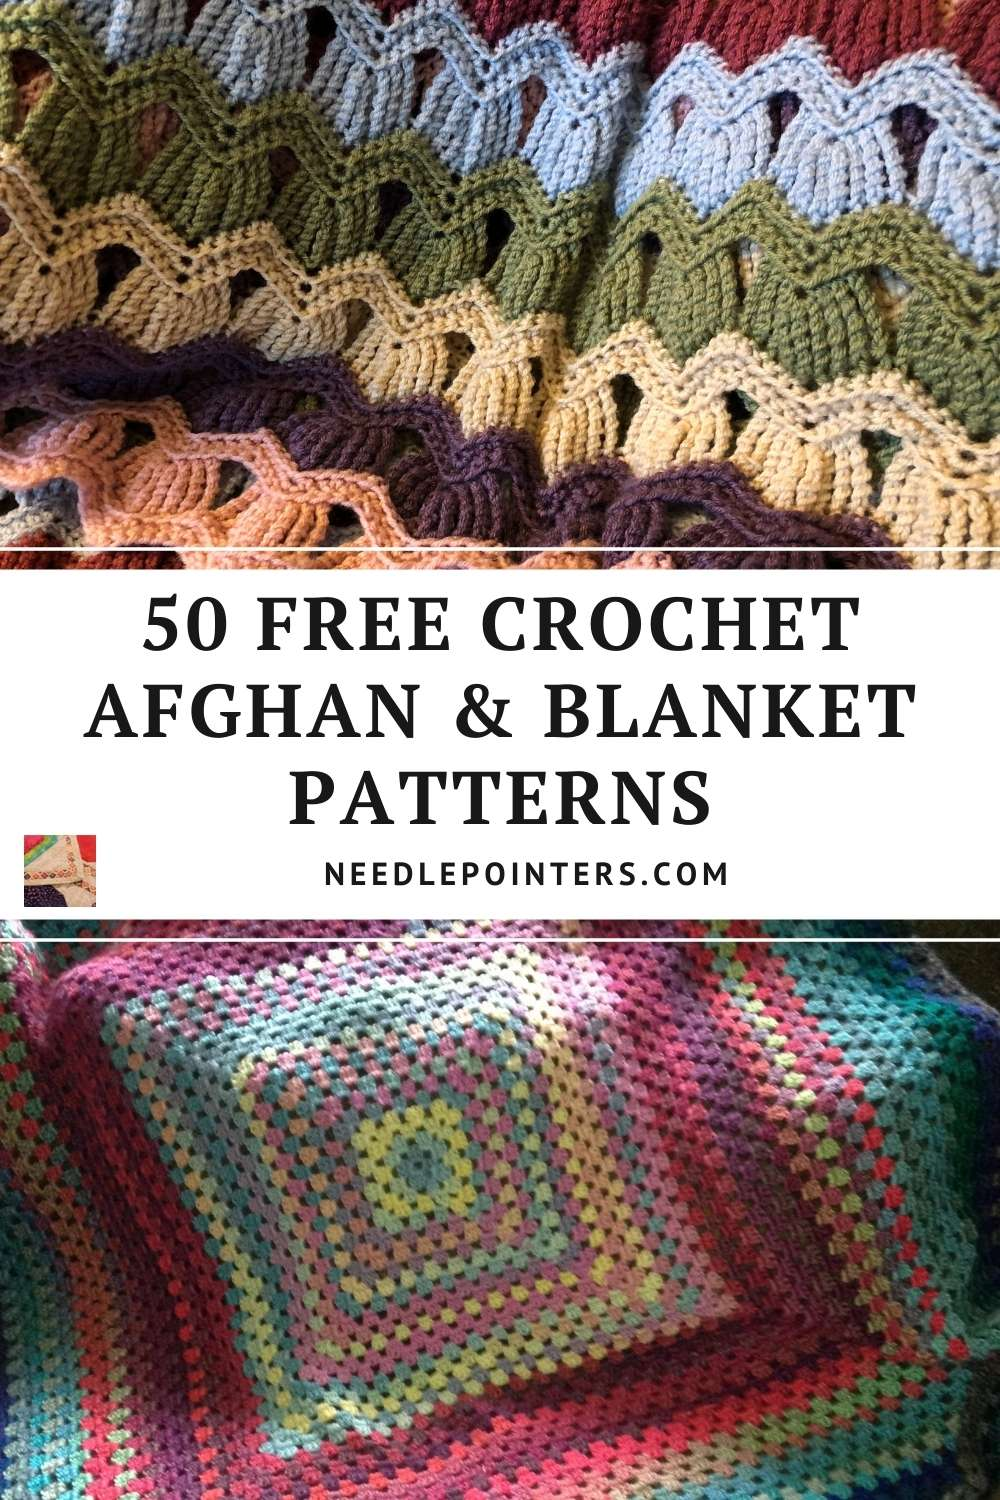 Over 50 FREE Patterns for Crochet Afghans and Blankets